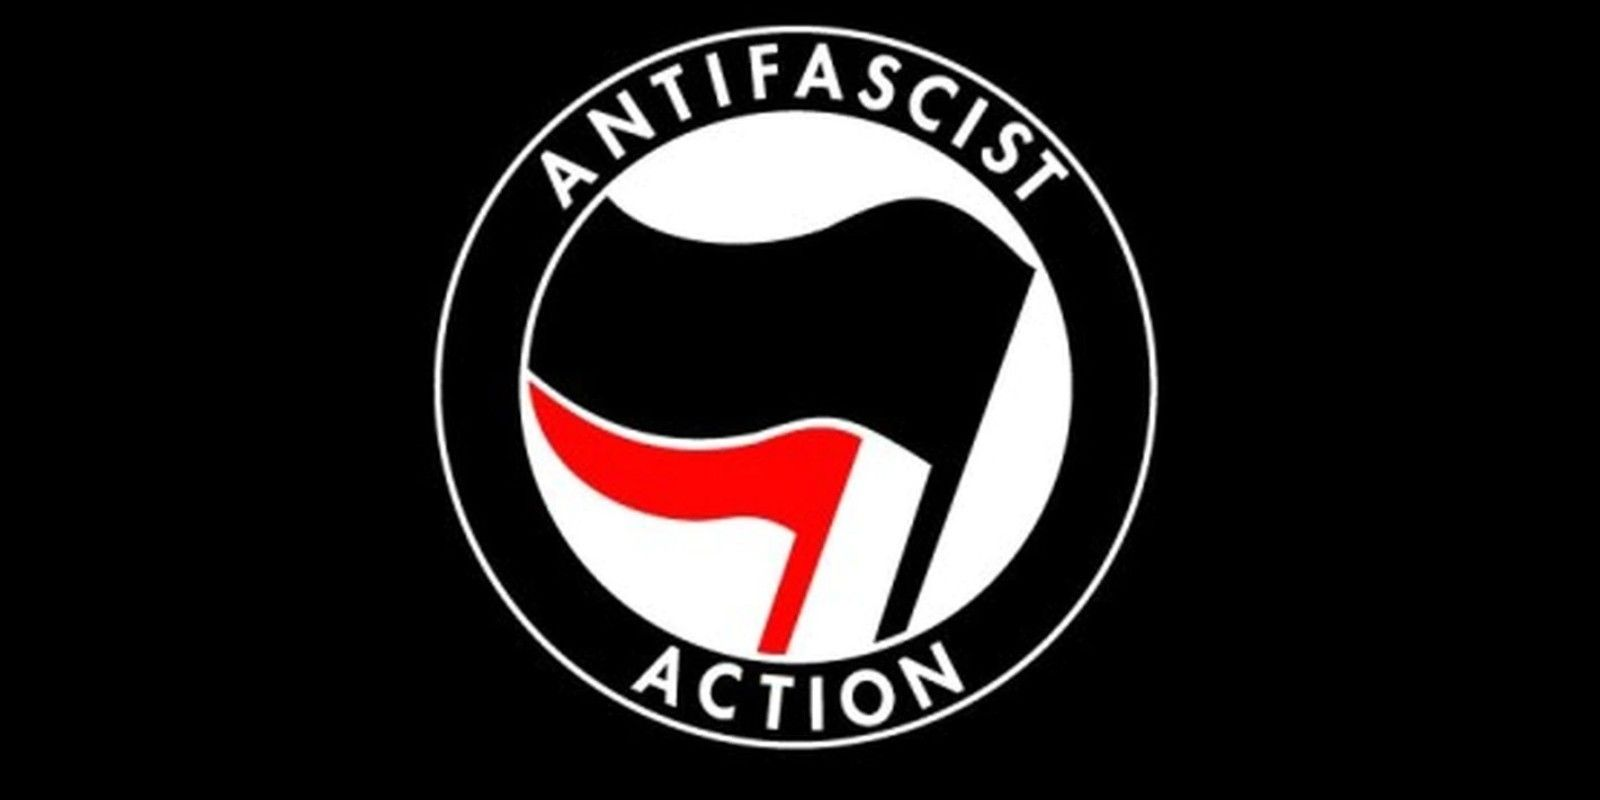 Twitter Suspends Suspicious Self-Described Antifa Account for Threats of  Violence